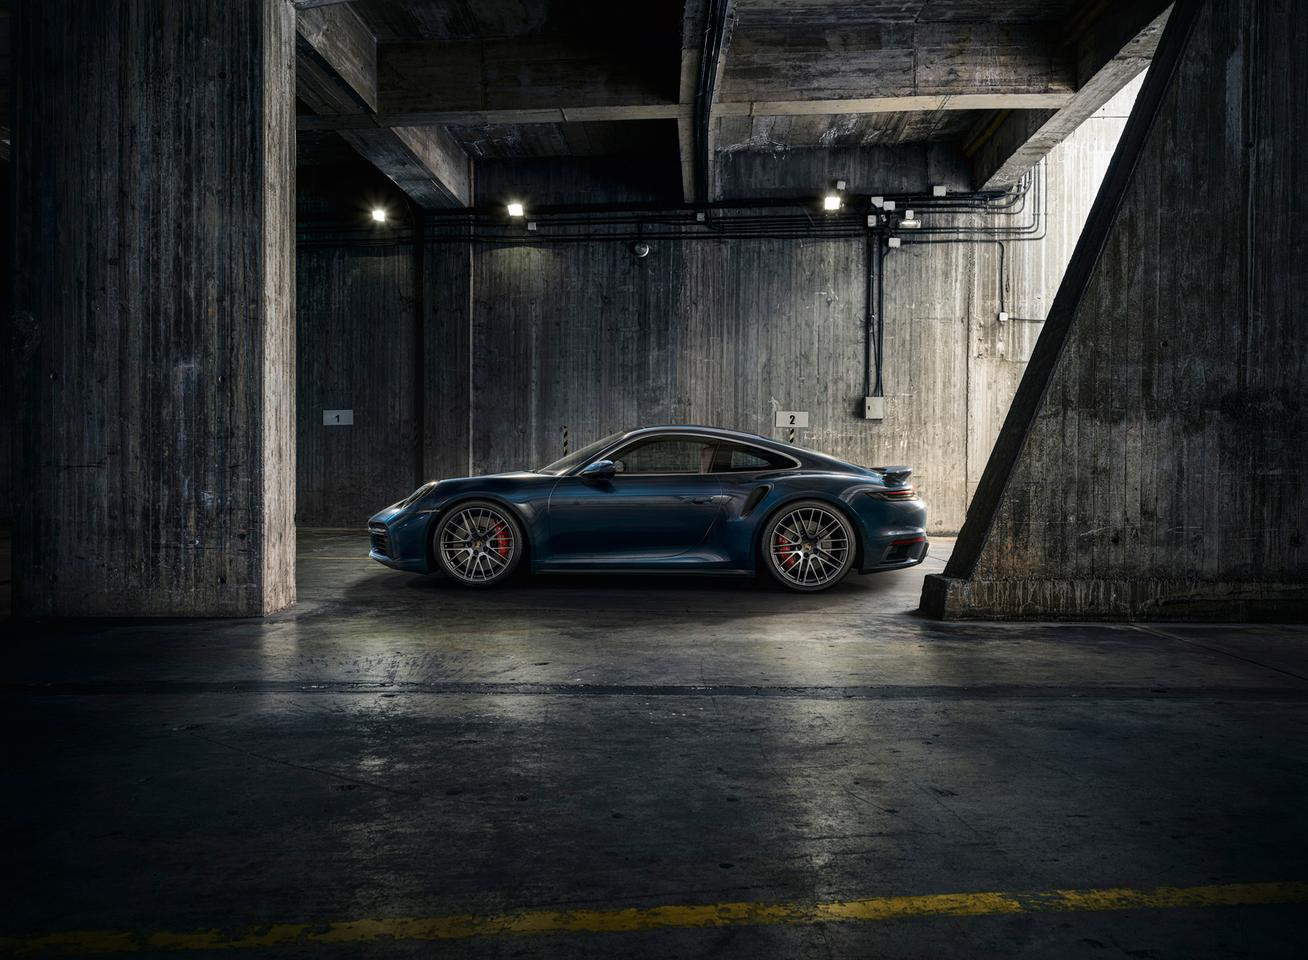 New Turbo models join the 911 family